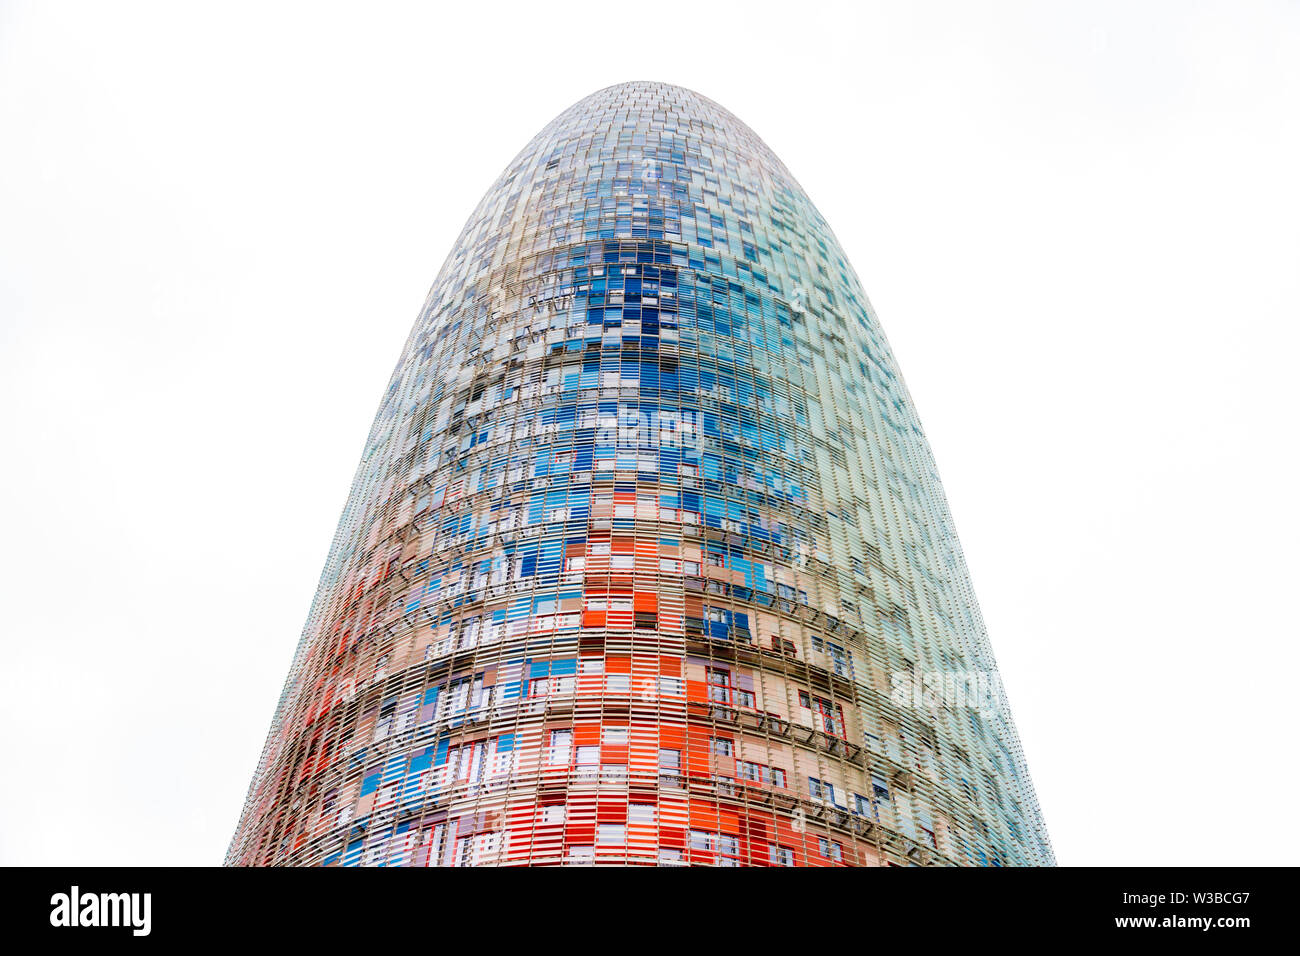 Barcelona, Spain - September 05, 2018: The Torre Glories, formerly known as Torre Agbar in a beautiful autumn light in Barcelona, Spain - Stock Image